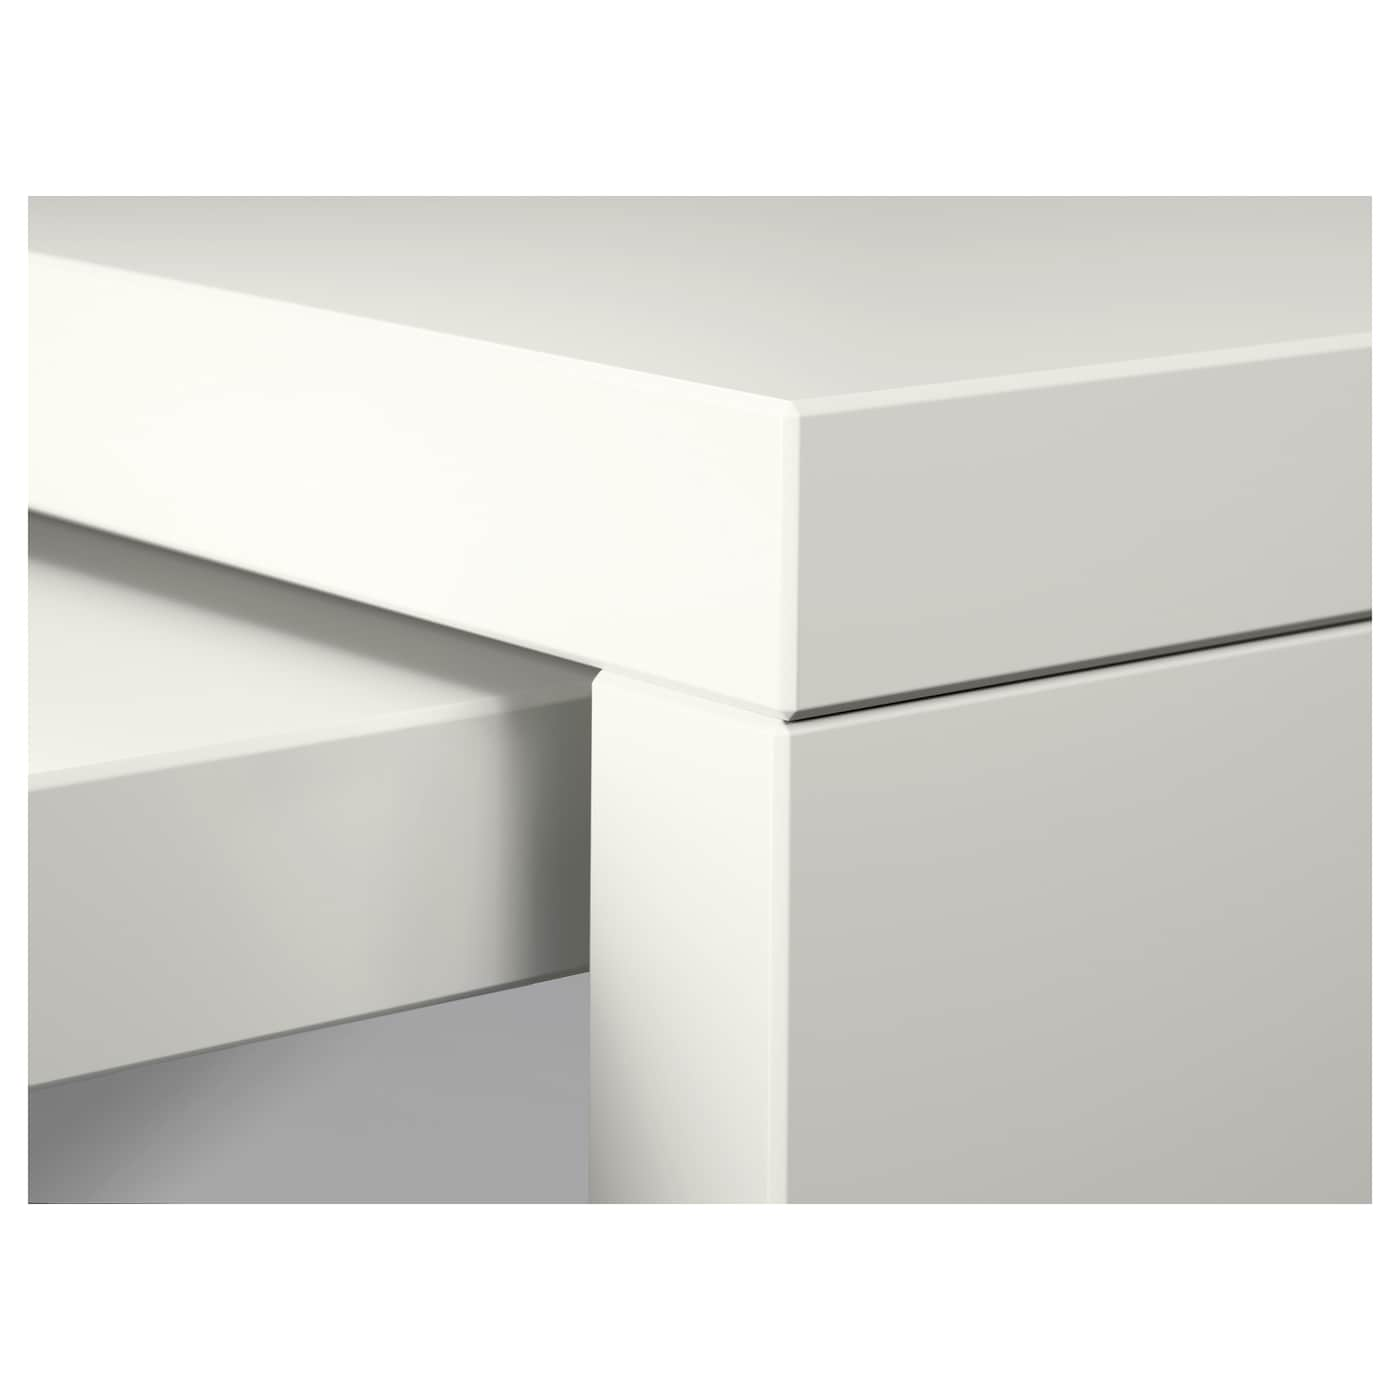 malm bureau avec tablette coulissante blanc 151x65 cm ikea. Black Bedroom Furniture Sets. Home Design Ideas